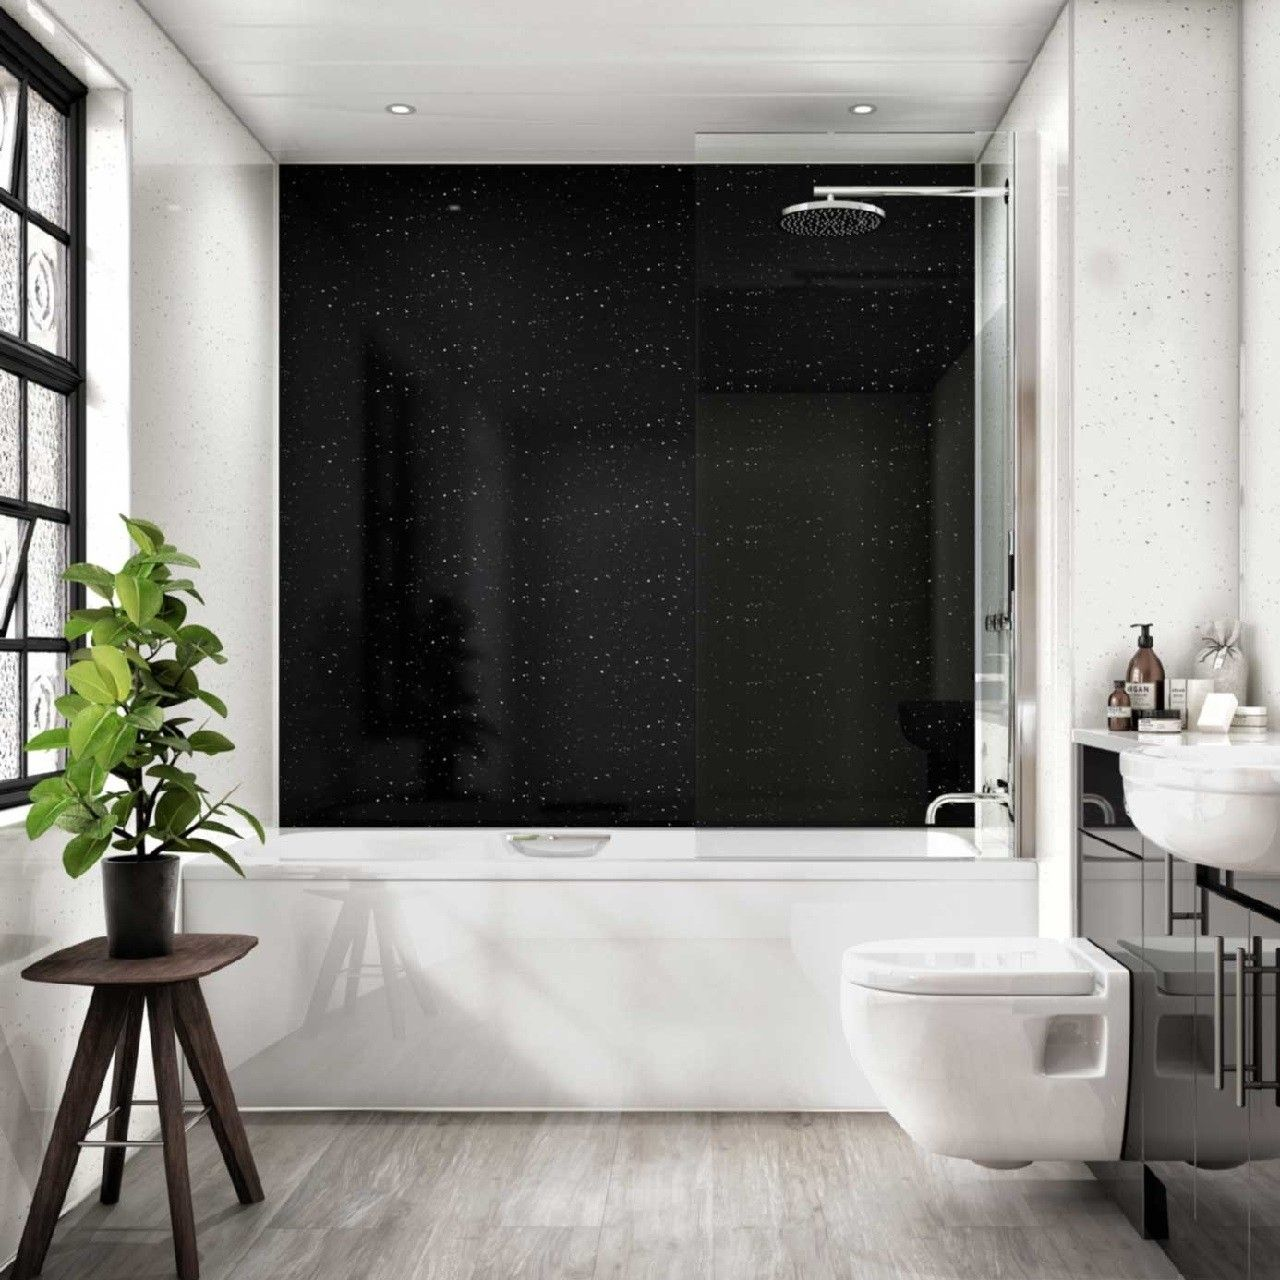 Multipanel Classic Stardust 2400mm X 598mm Unlipped Bathroom Wall Panel Bathroom Wall Panels Bathtub Walls Wall Paneling